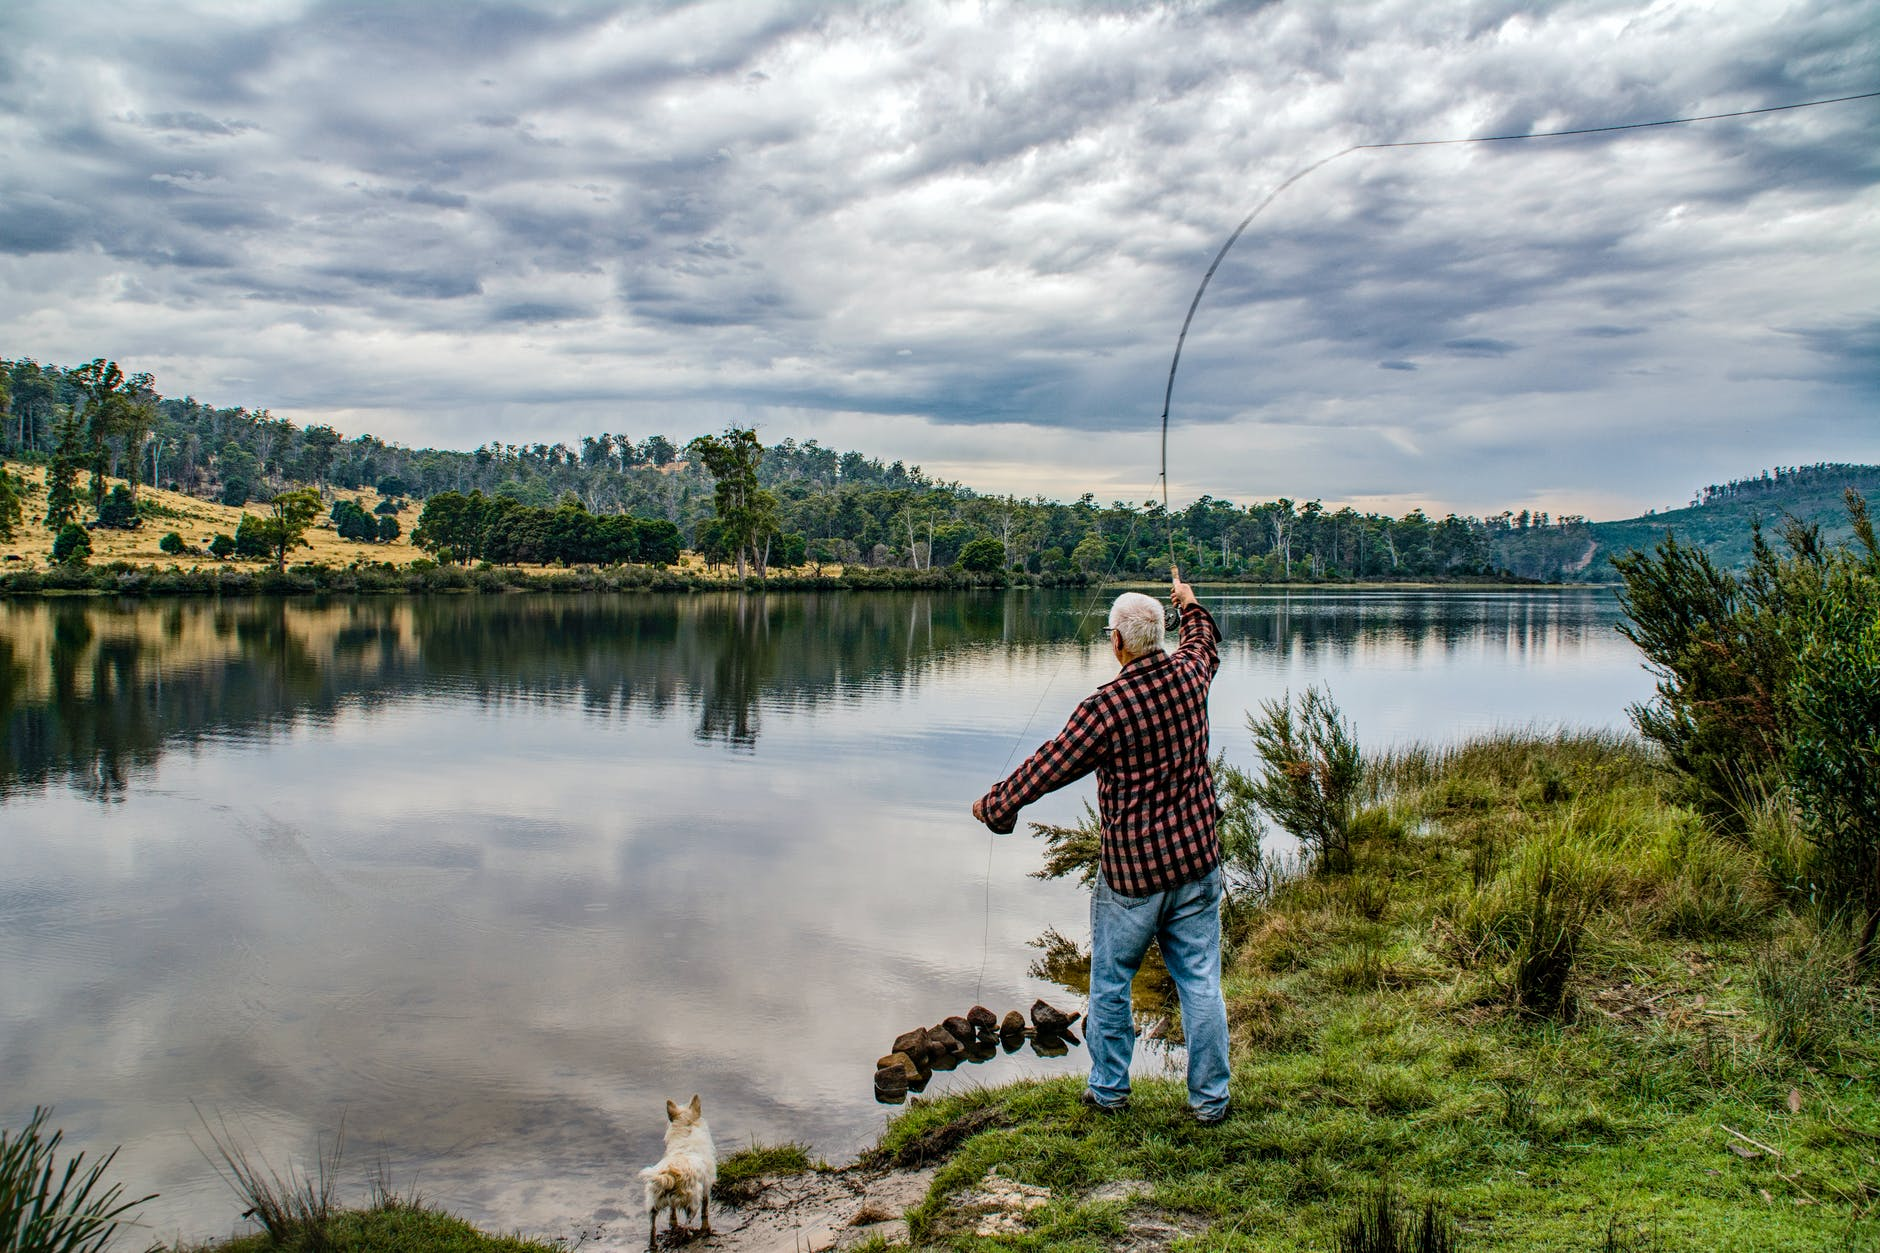 a man setting up his fishing rod on a riverbank